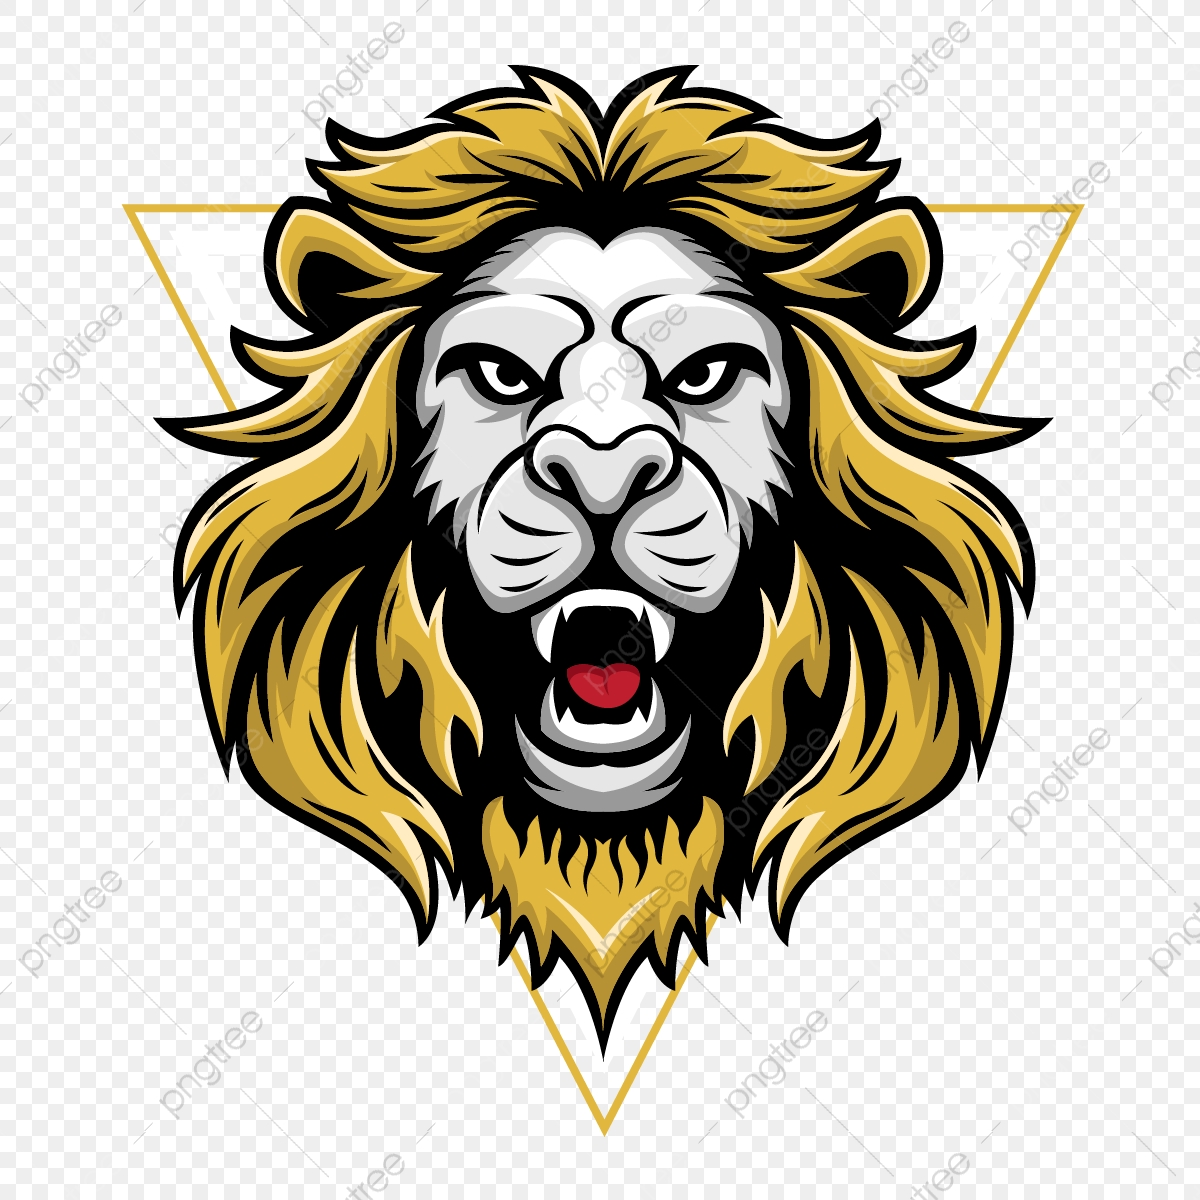 Lion Head Png Images Vector And Psd Files Free Download On Pngtree In this gallery lion we have 58 free png images with transparent background. https pngtree com freepng lion head t vector design 5245388 html